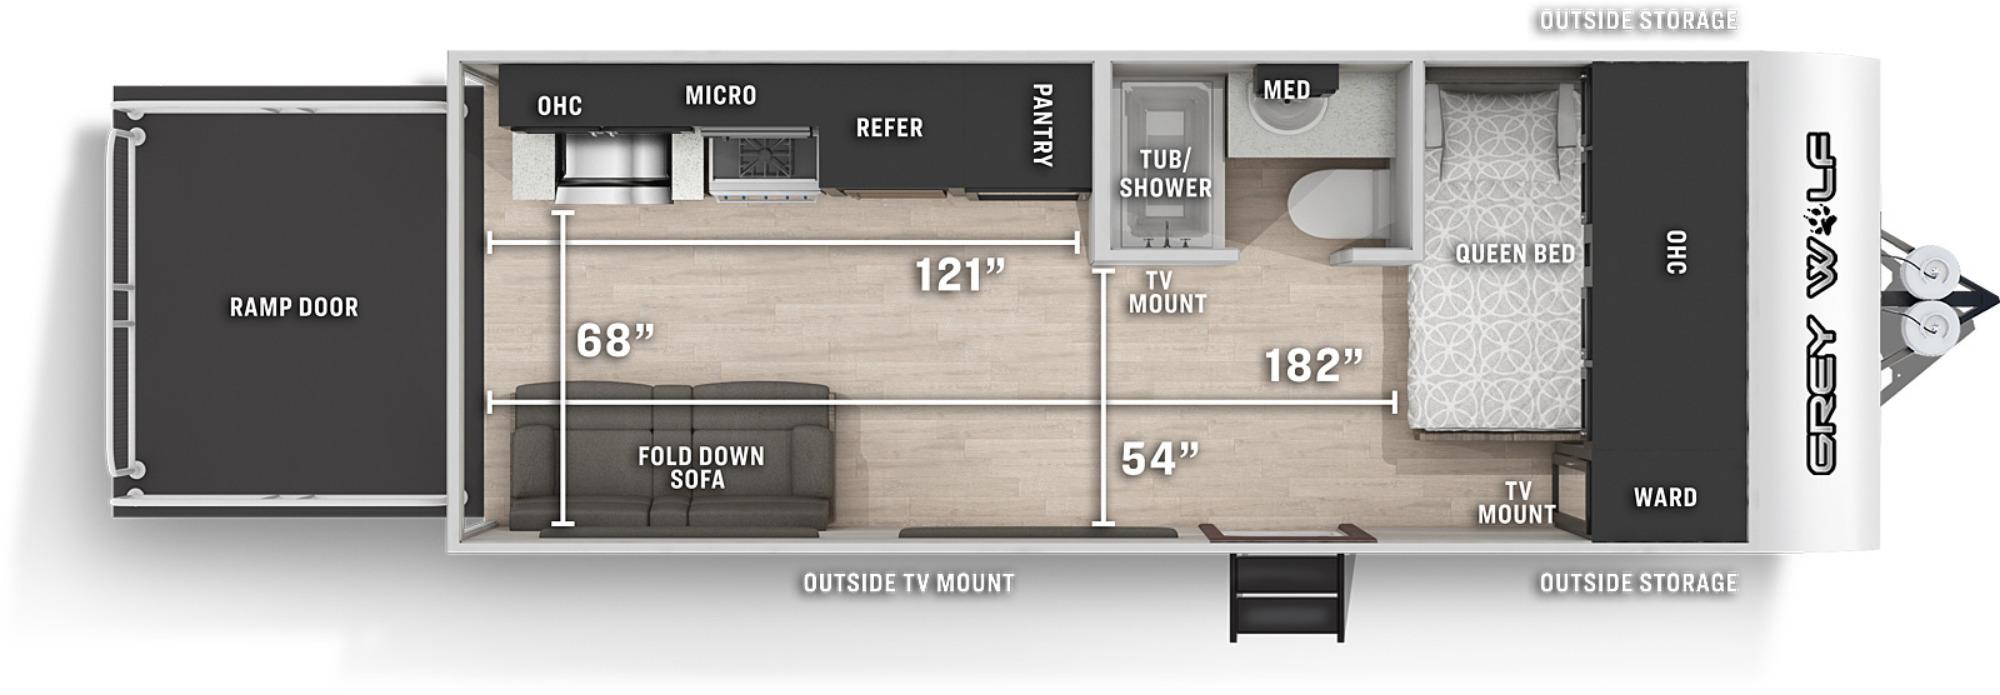 View Floor Plan for 2022 FOREST RIVER GREY WOLF 18RR